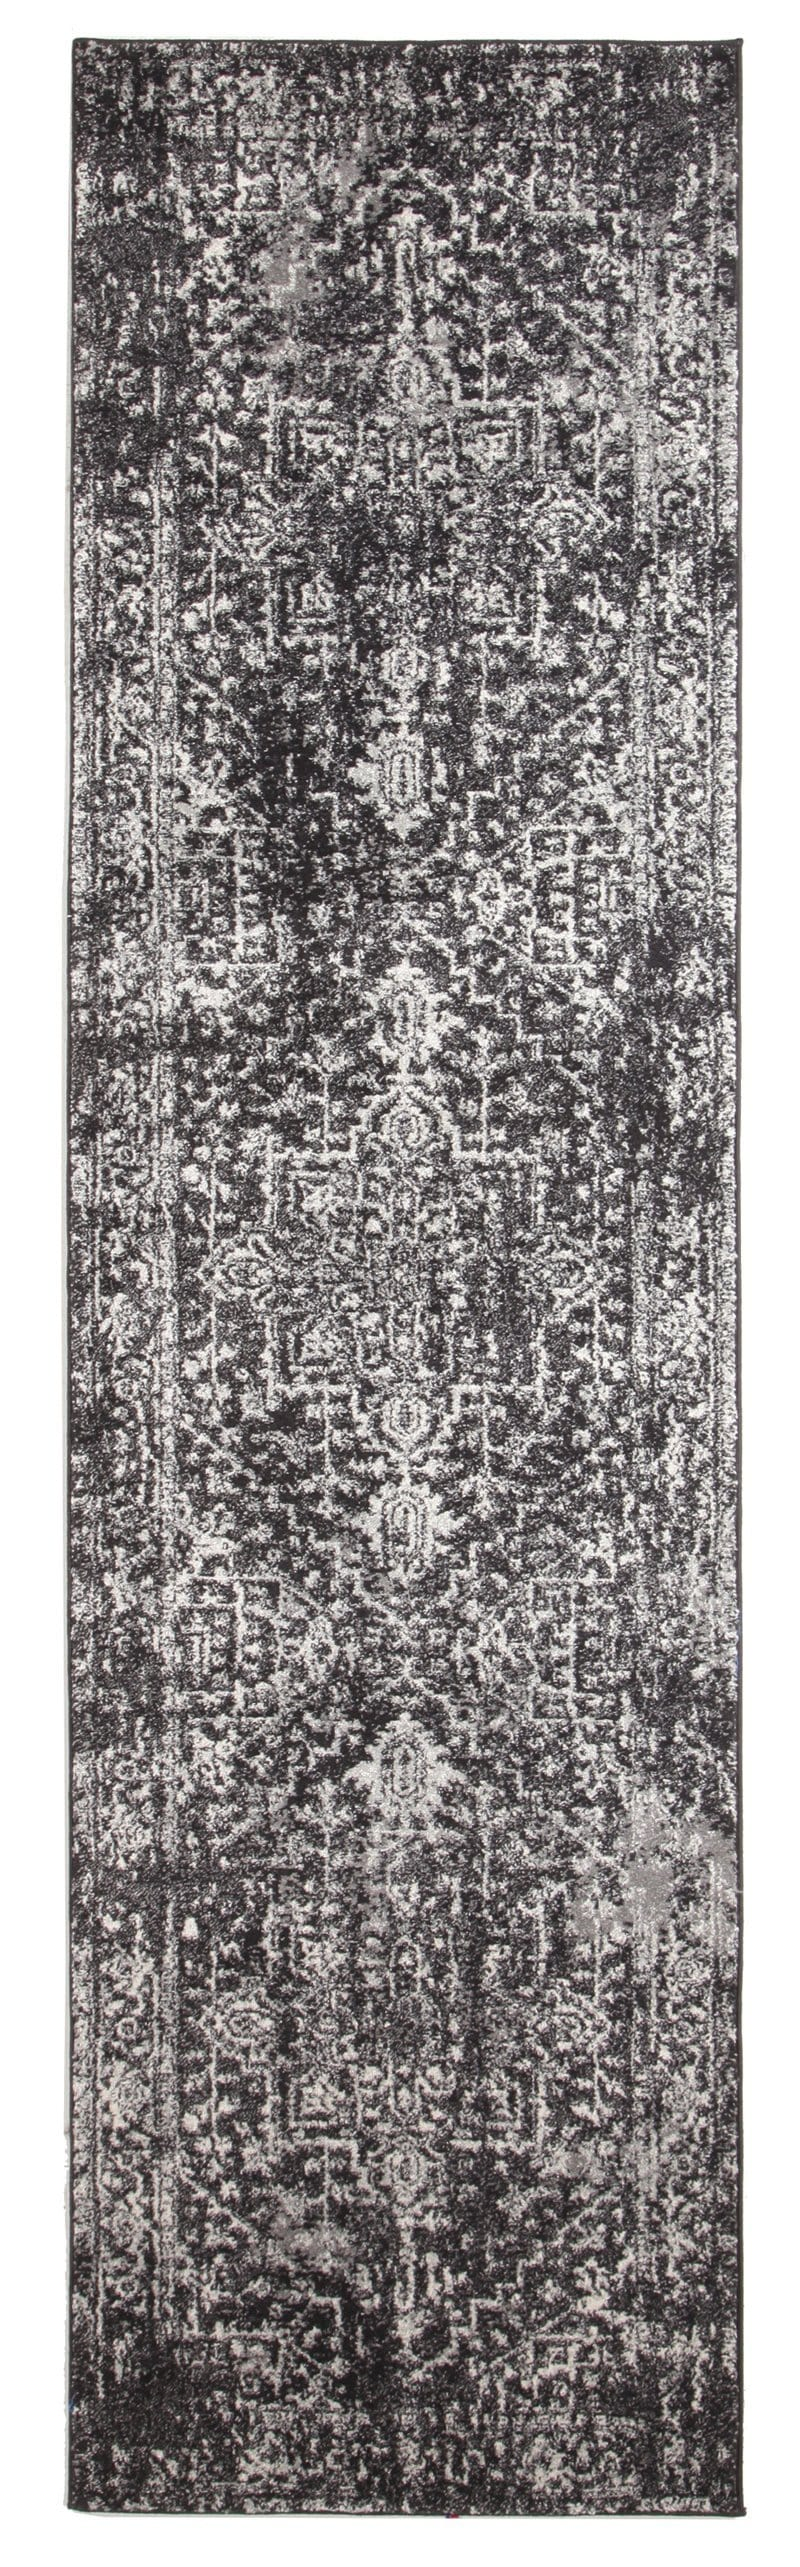 Harstad Charcoal Grey Transitional Runner Rug